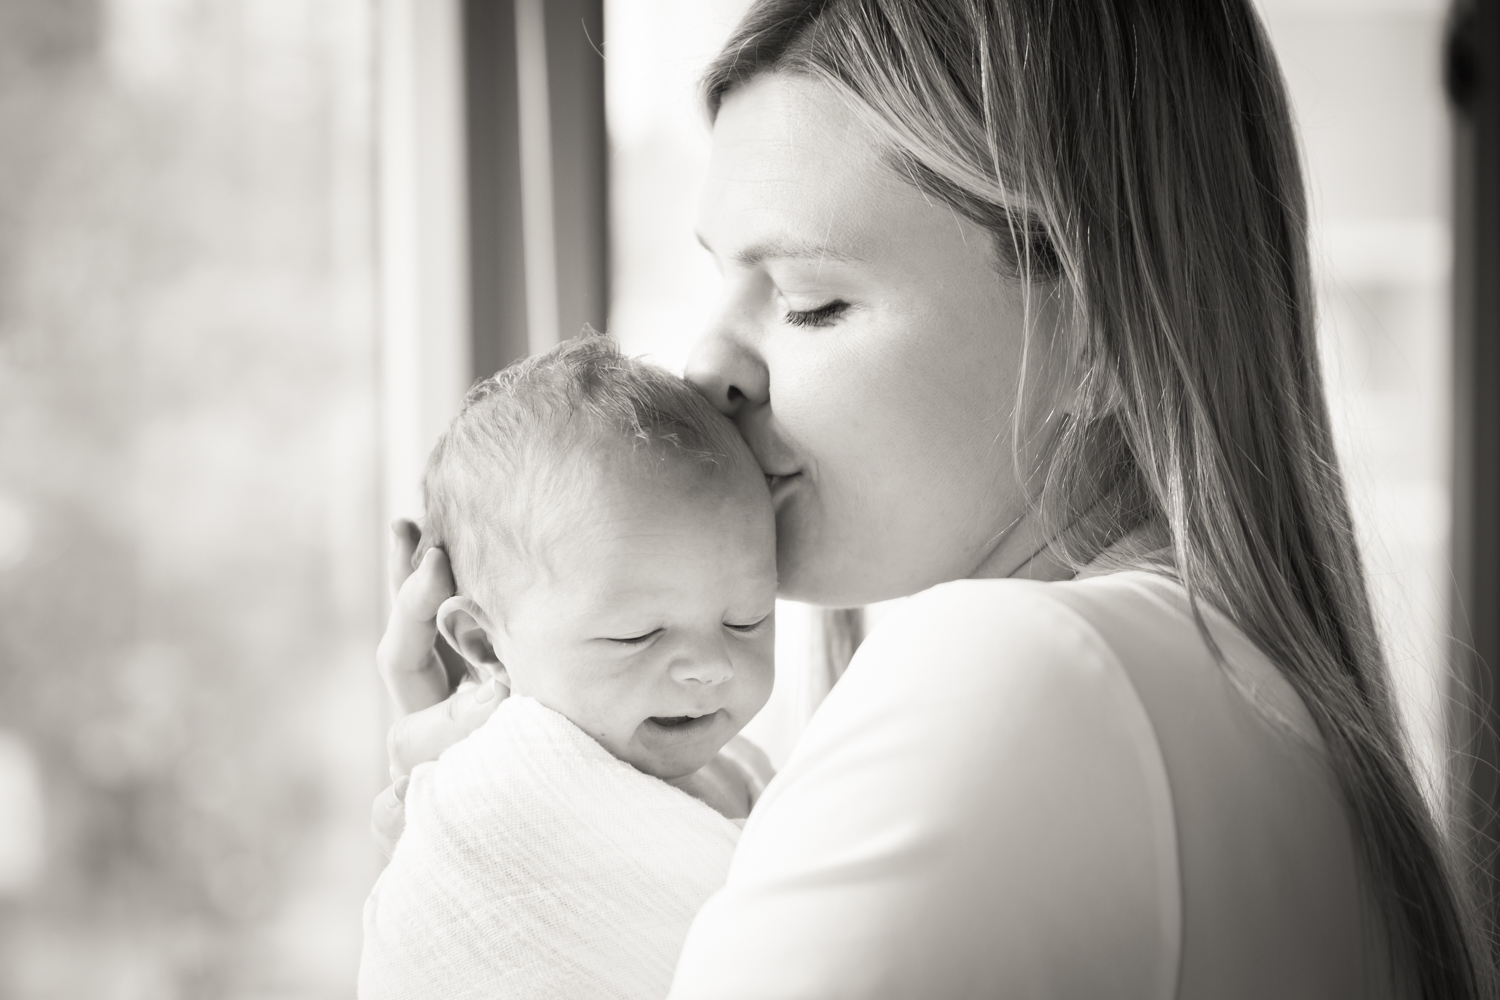 Black and white photo of mother kissing baby on side of head